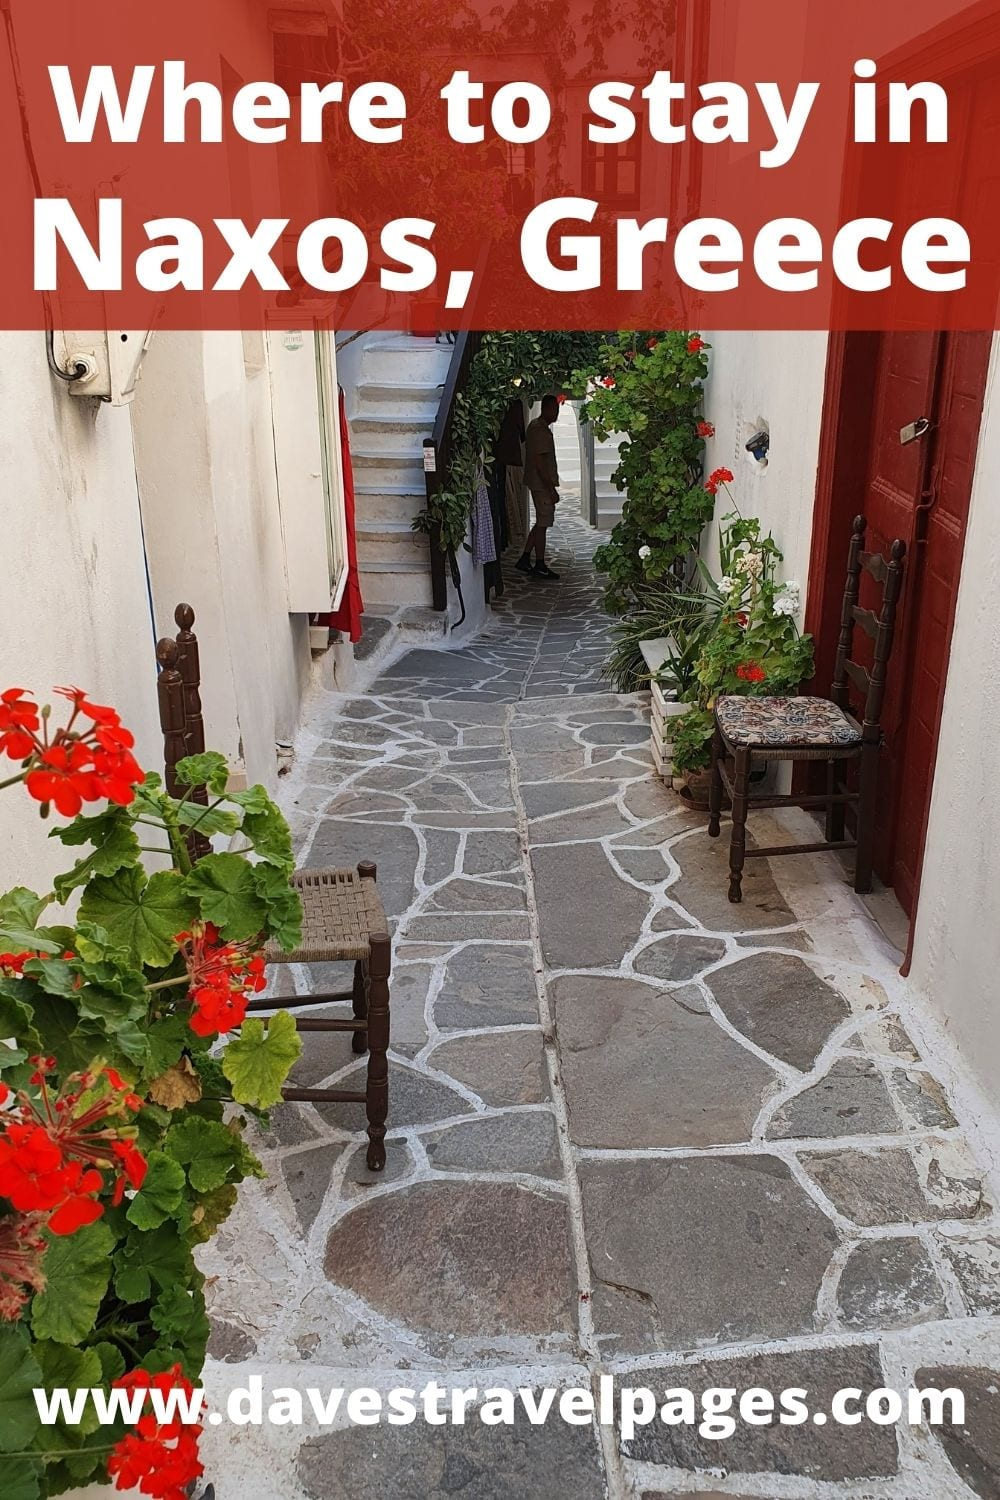 A travel guide on the best areas to stay in Naxos island, Greece